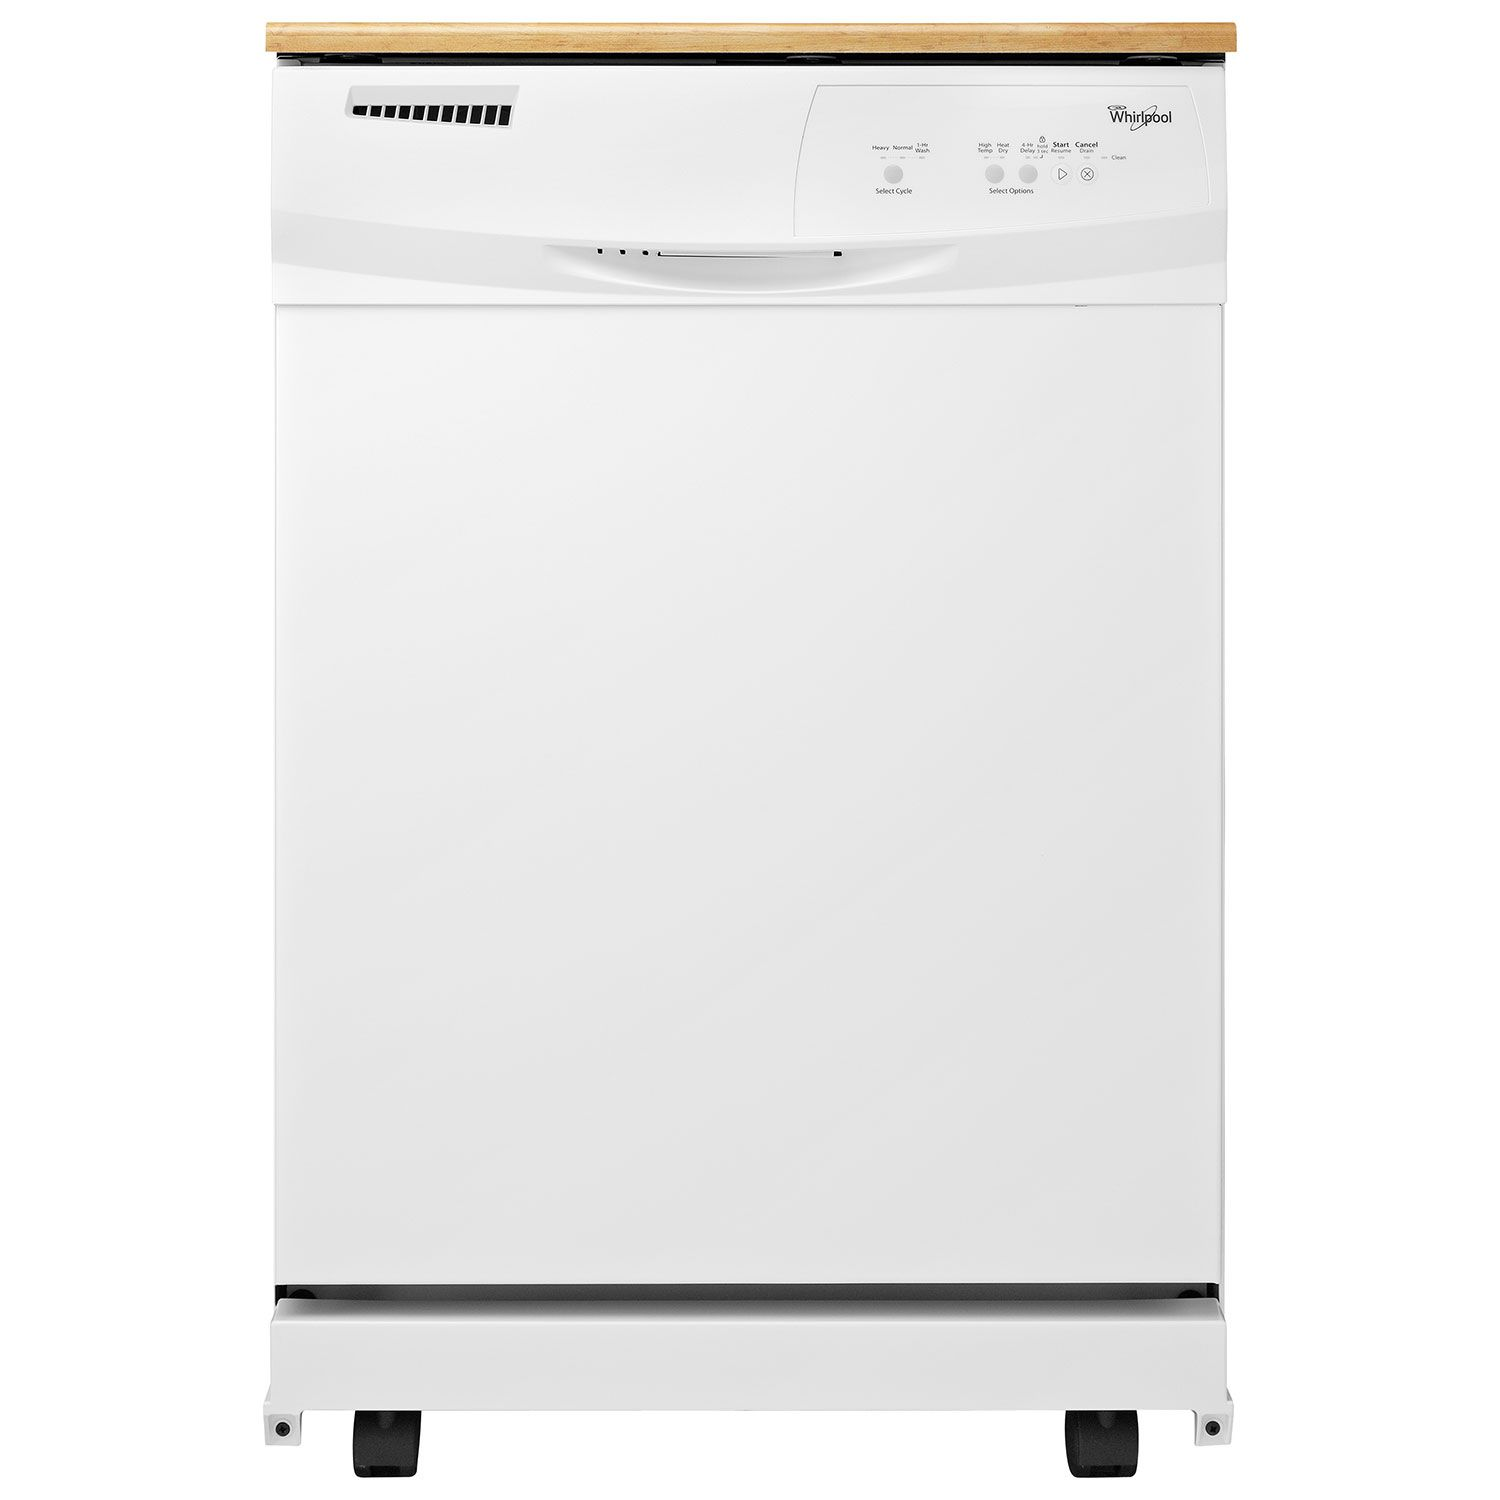 Cleaning Your Dishes Is Easy And Efficient With This Whirlpool Portable Dishwasher Equipped With A Quiet Portable Dishwasher Baby Car Seats Cool Things To Buy